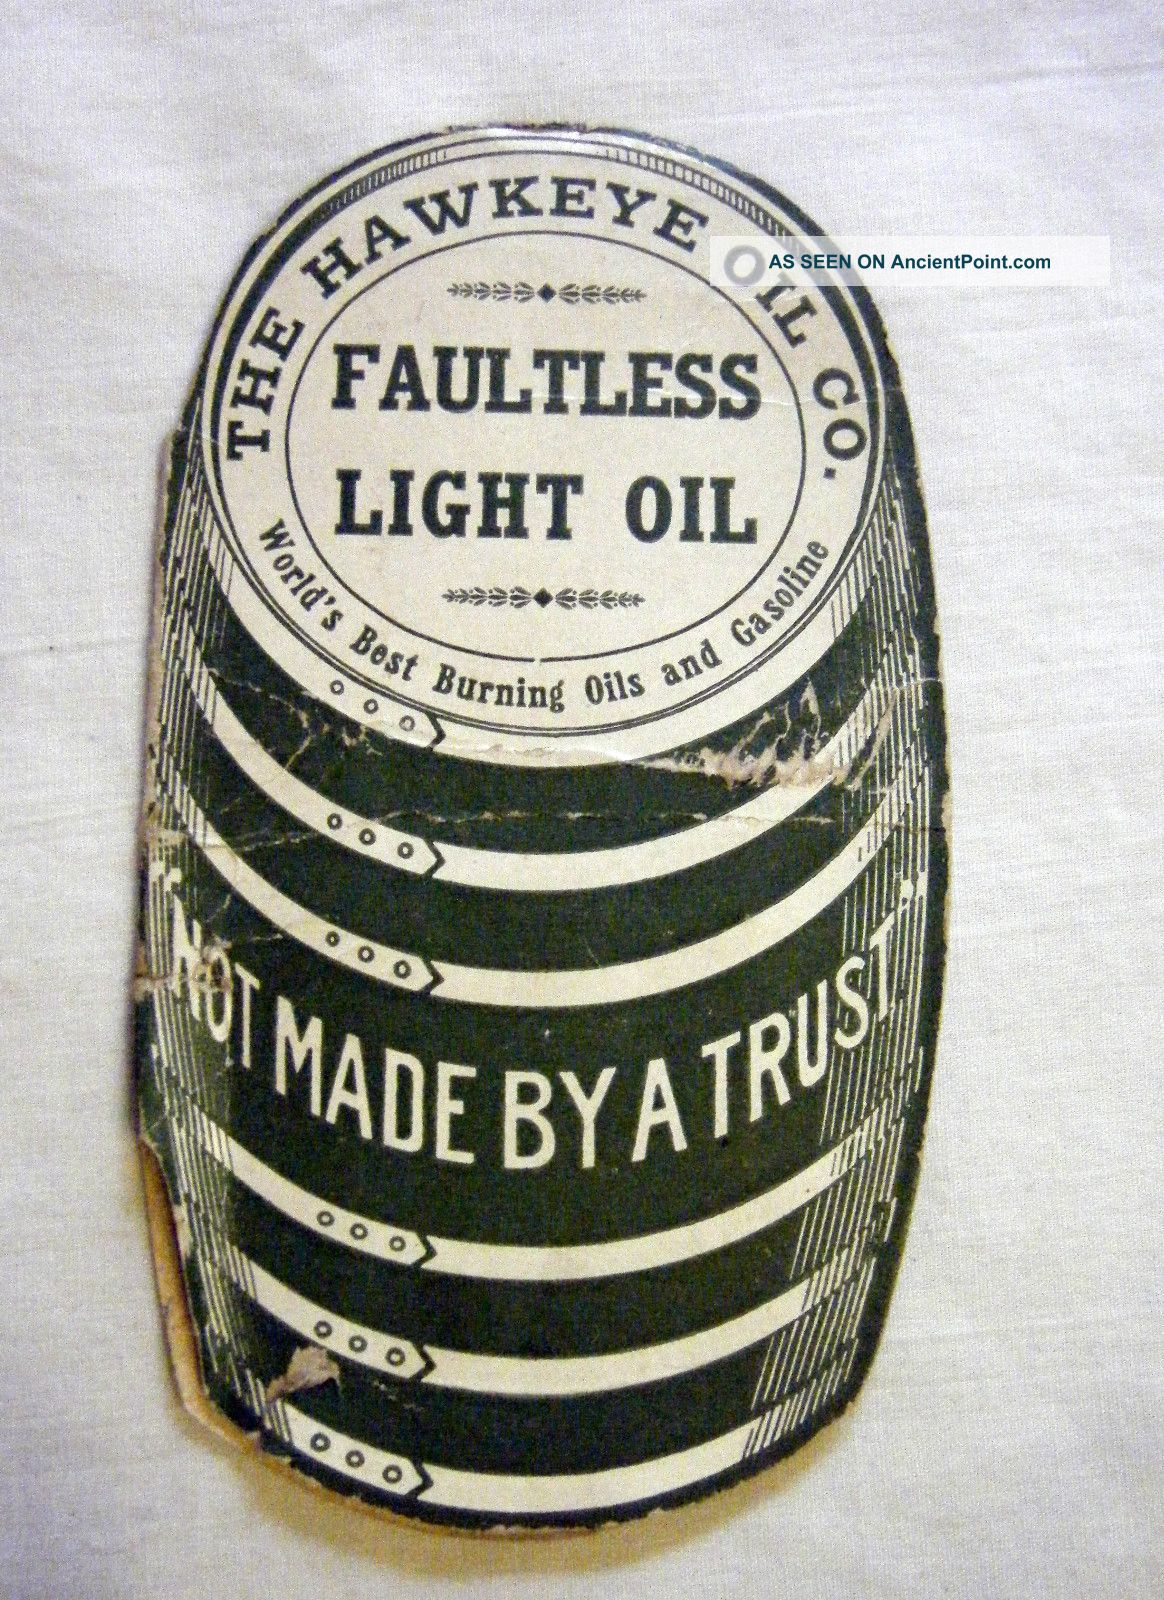 Hawkeye Oil Co.  Faultless Oil Sewing Needles Pkt.  Not Made By A Trust Ia 1910 Needles & Cases photo